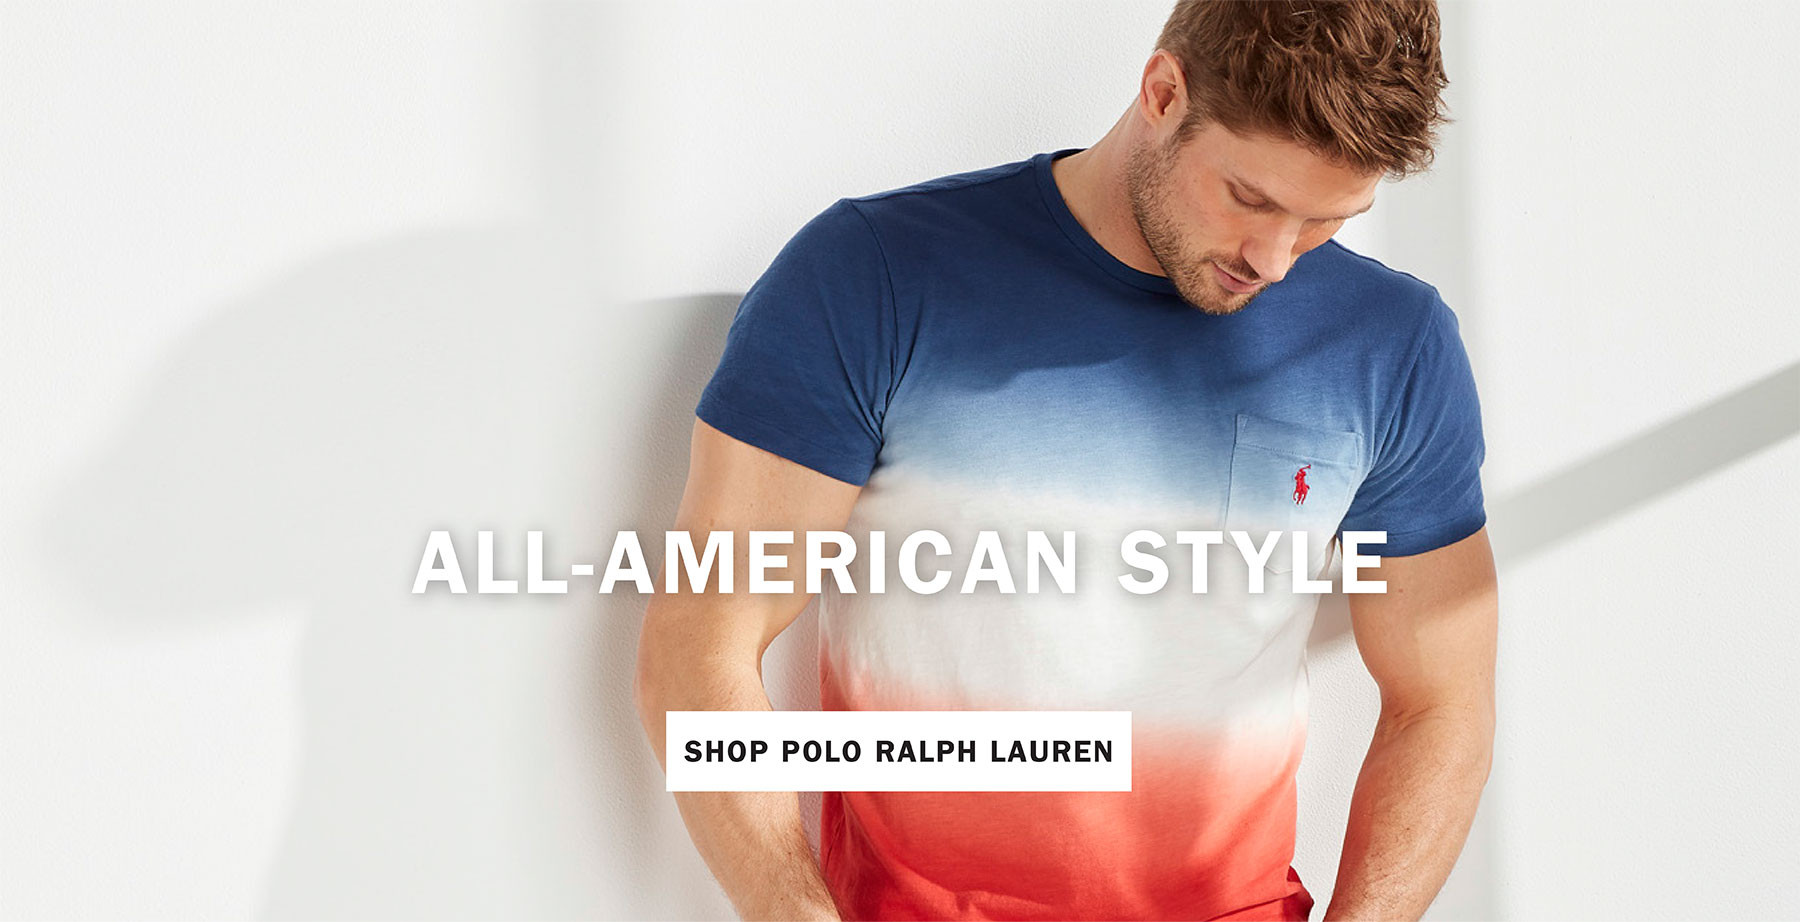 ALL-AMERICAN STYLE | SHOP POLO RALPH LAUREN